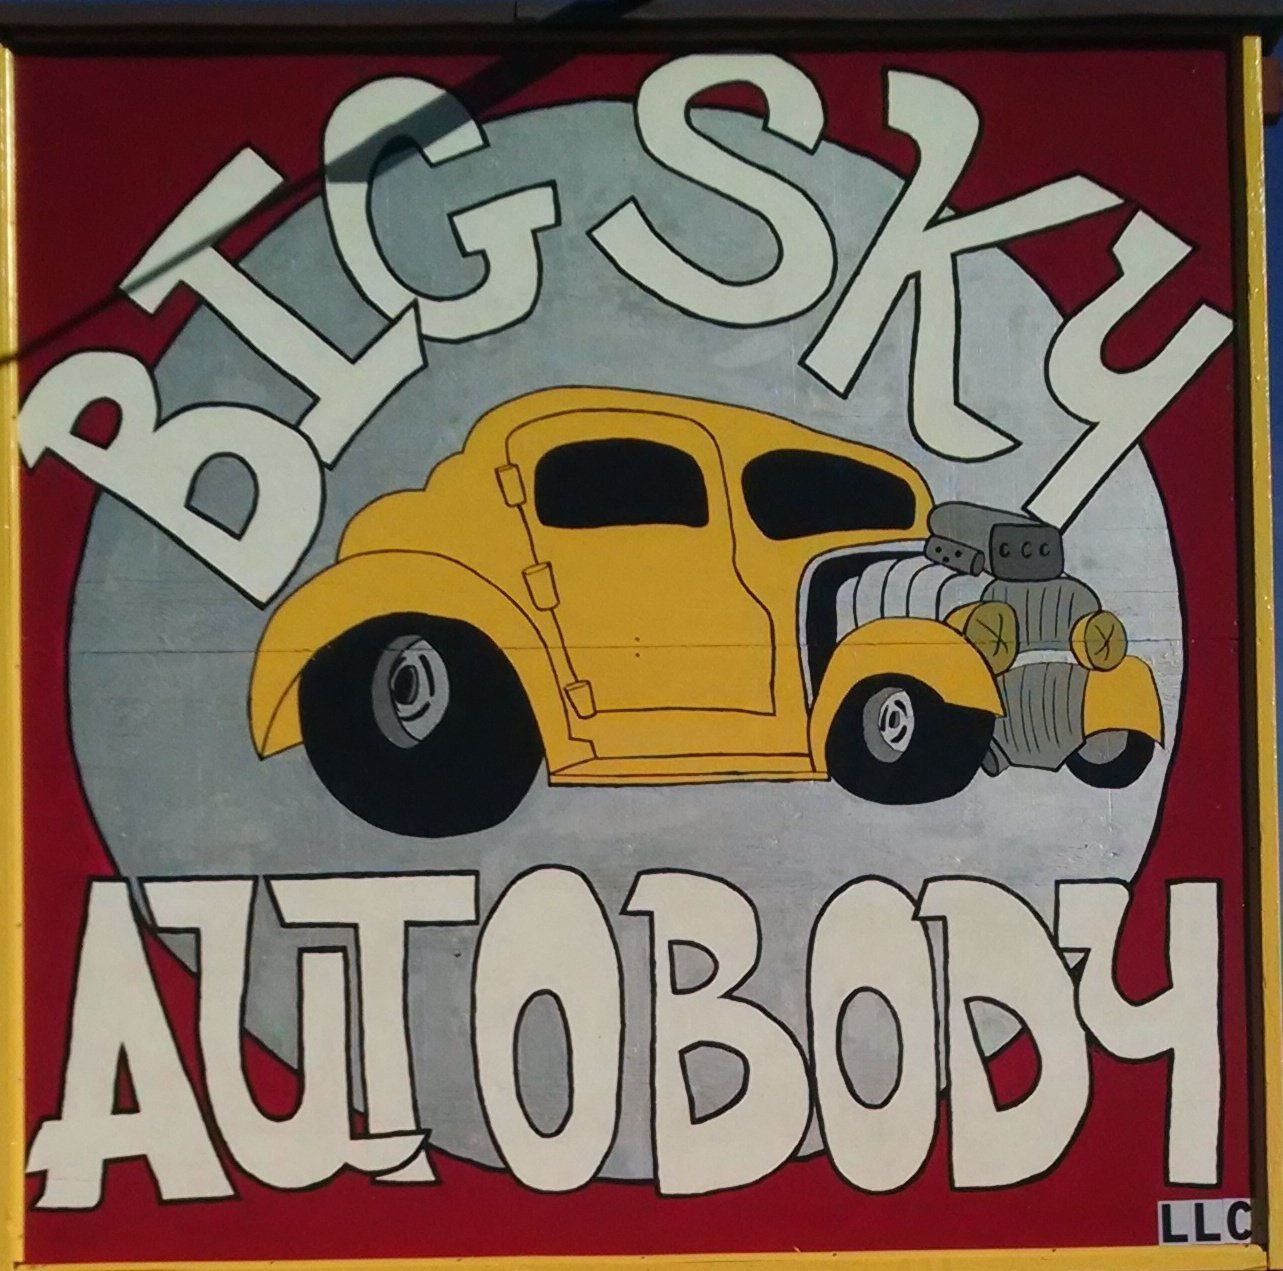 Big Sky Auto Body, LLC